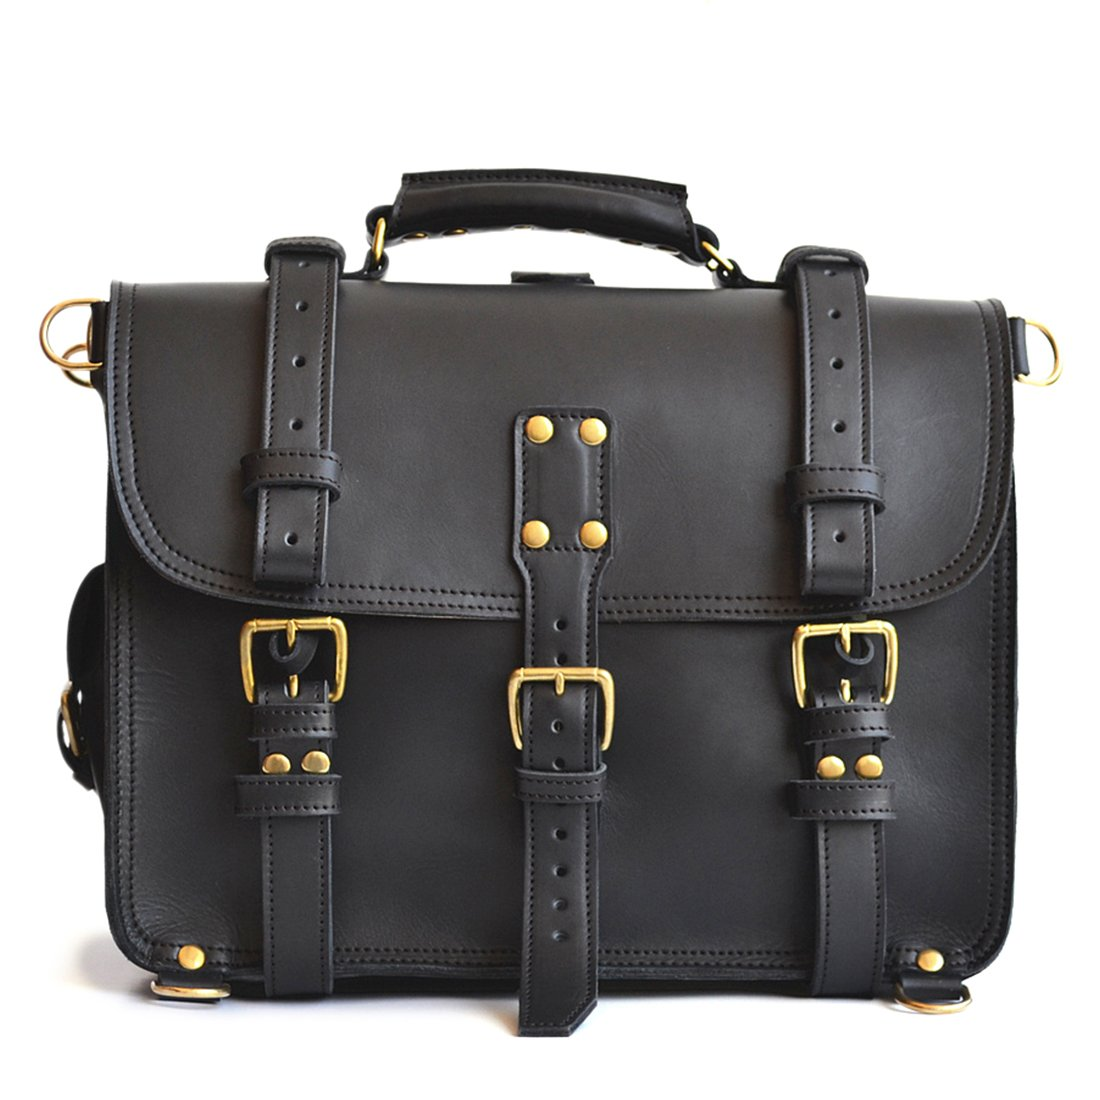 Solid Brass Hardware Full Grain Leather Marlondo Leather Double Space Briefcase 14, Black Solid Brass Hardware 14 TB01-B